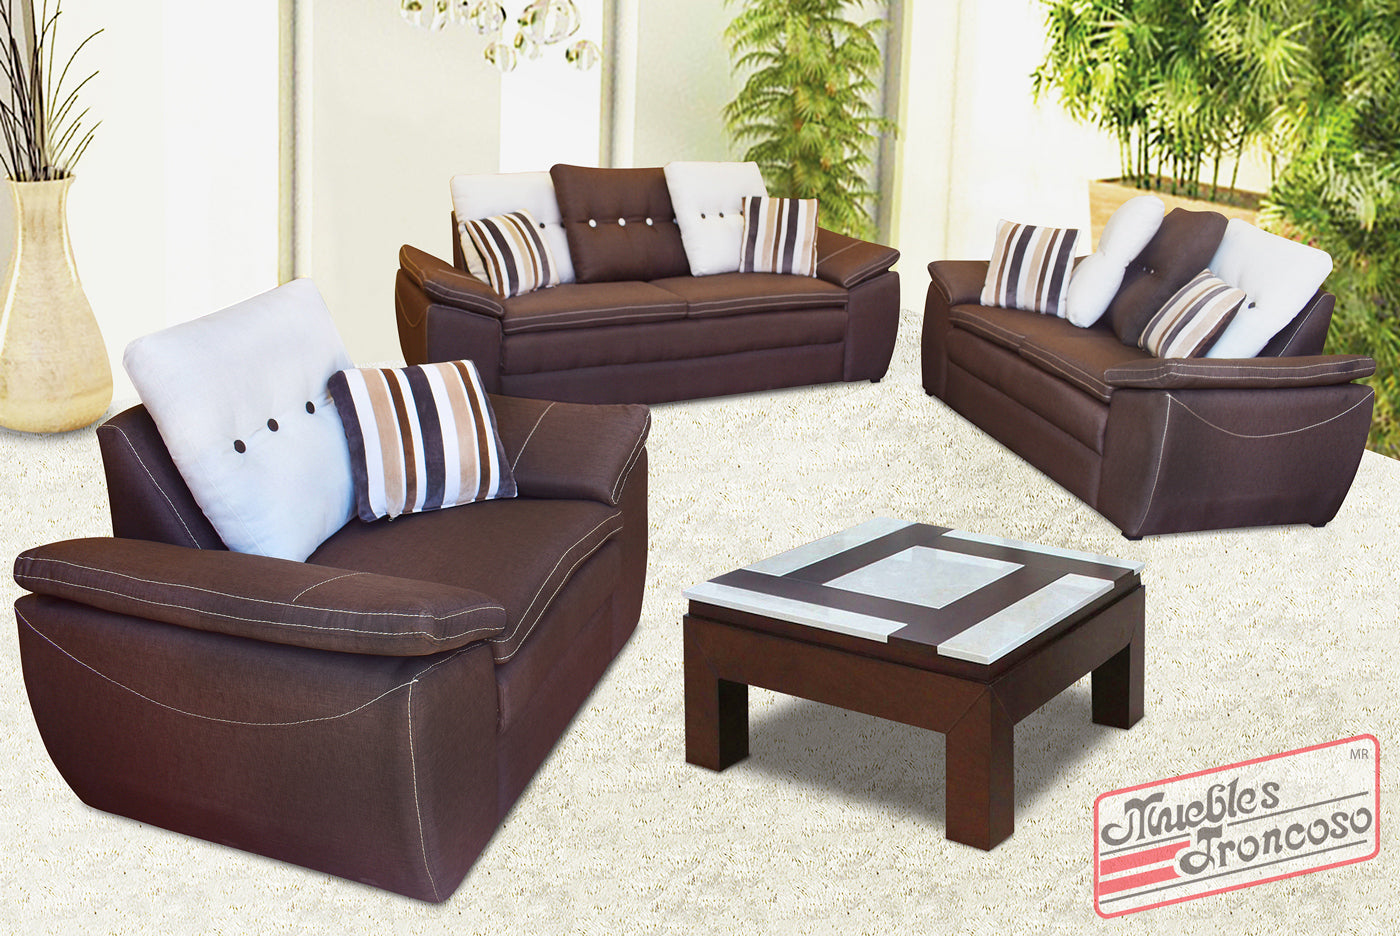 SALA RELAX TORONTO EXPRESSO 3-2 - Muebles Troncoso